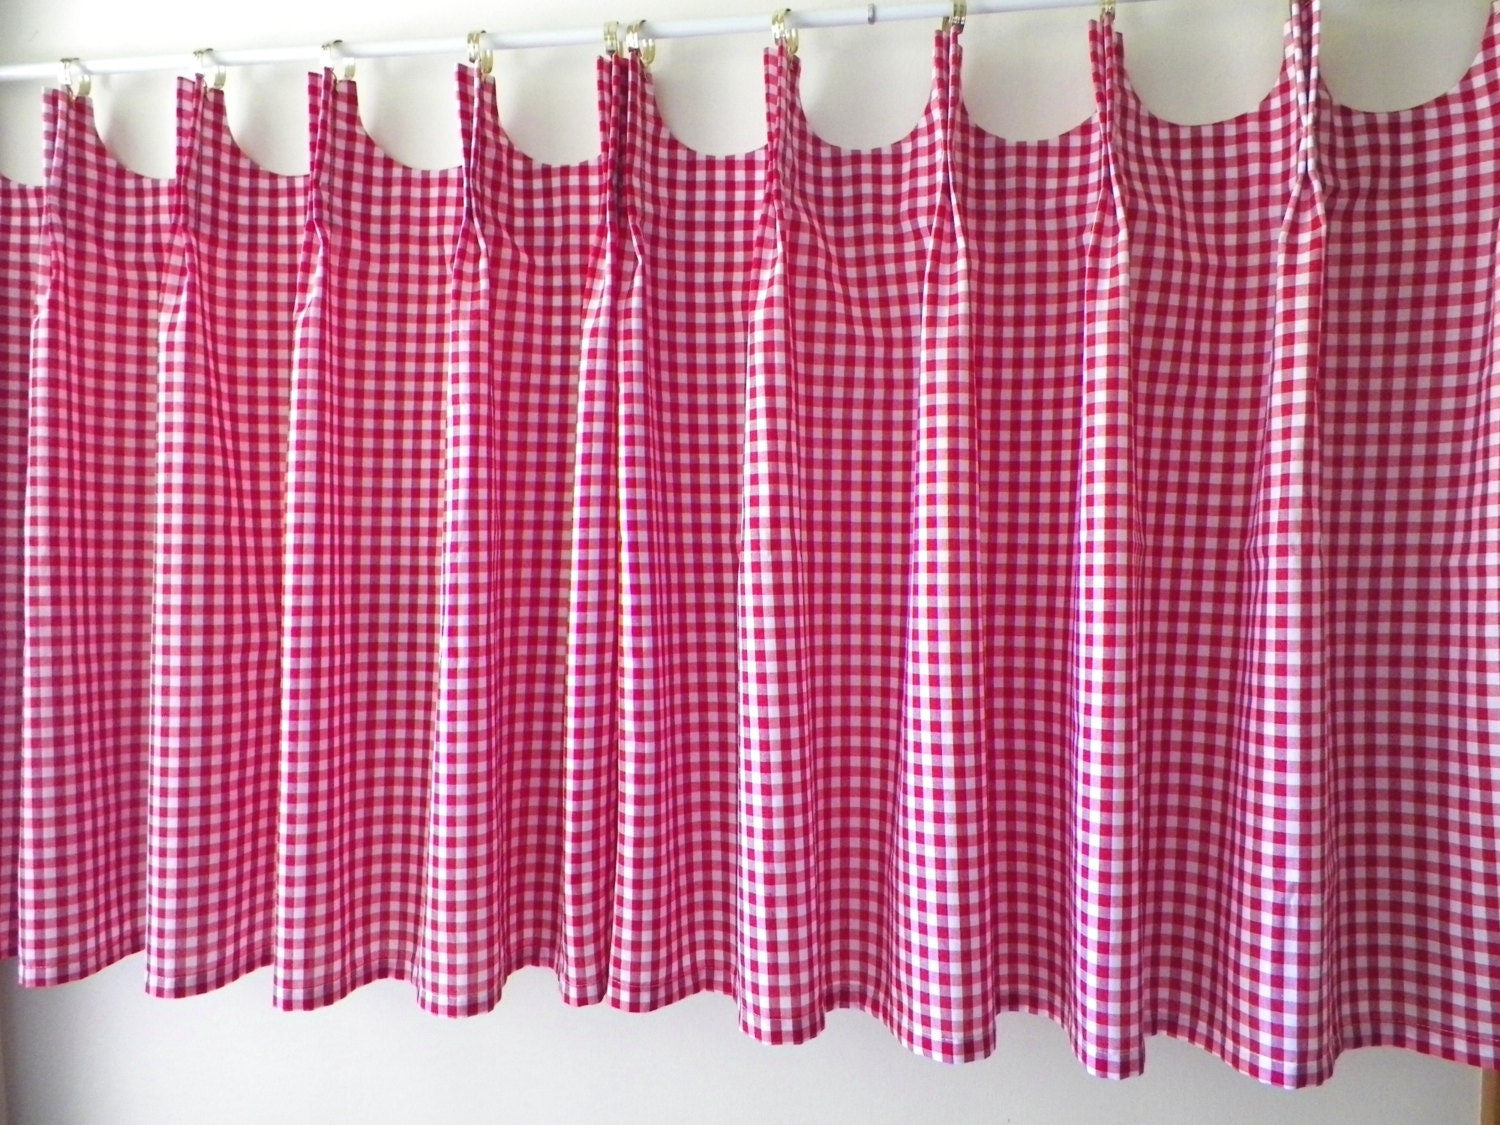 Red gingham curtains -  Zoom